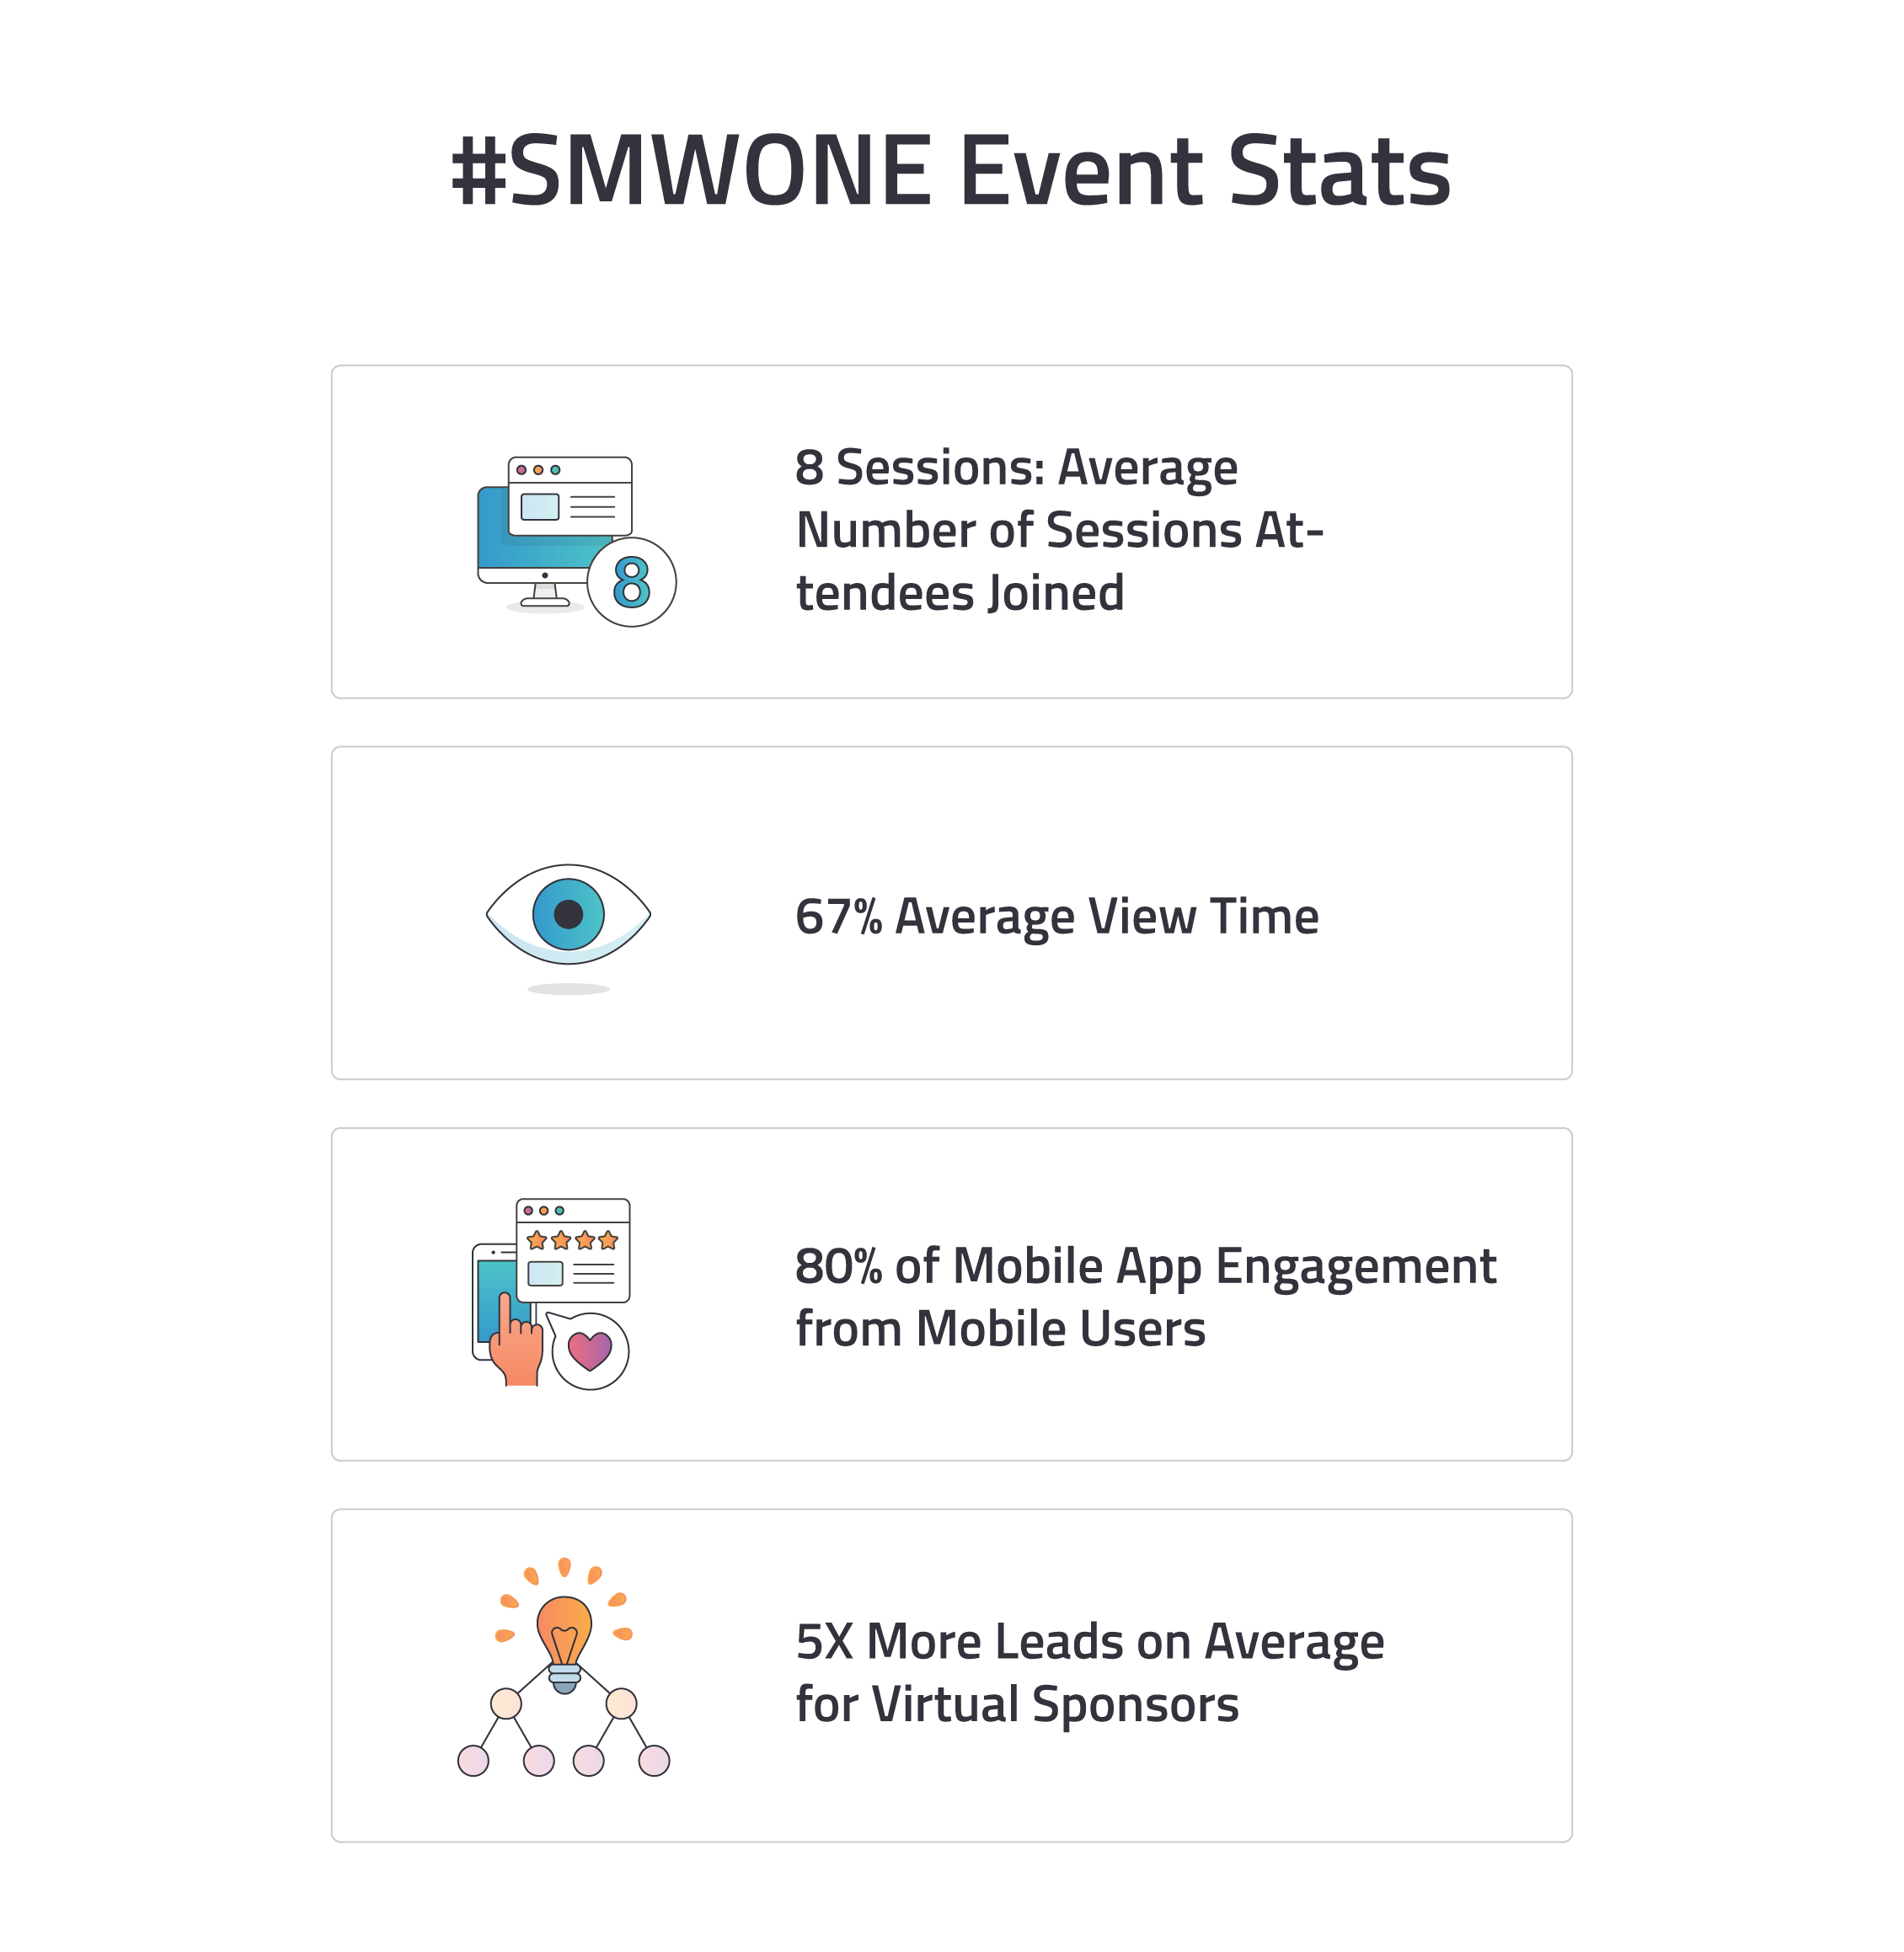 SMWONE - Event Stats